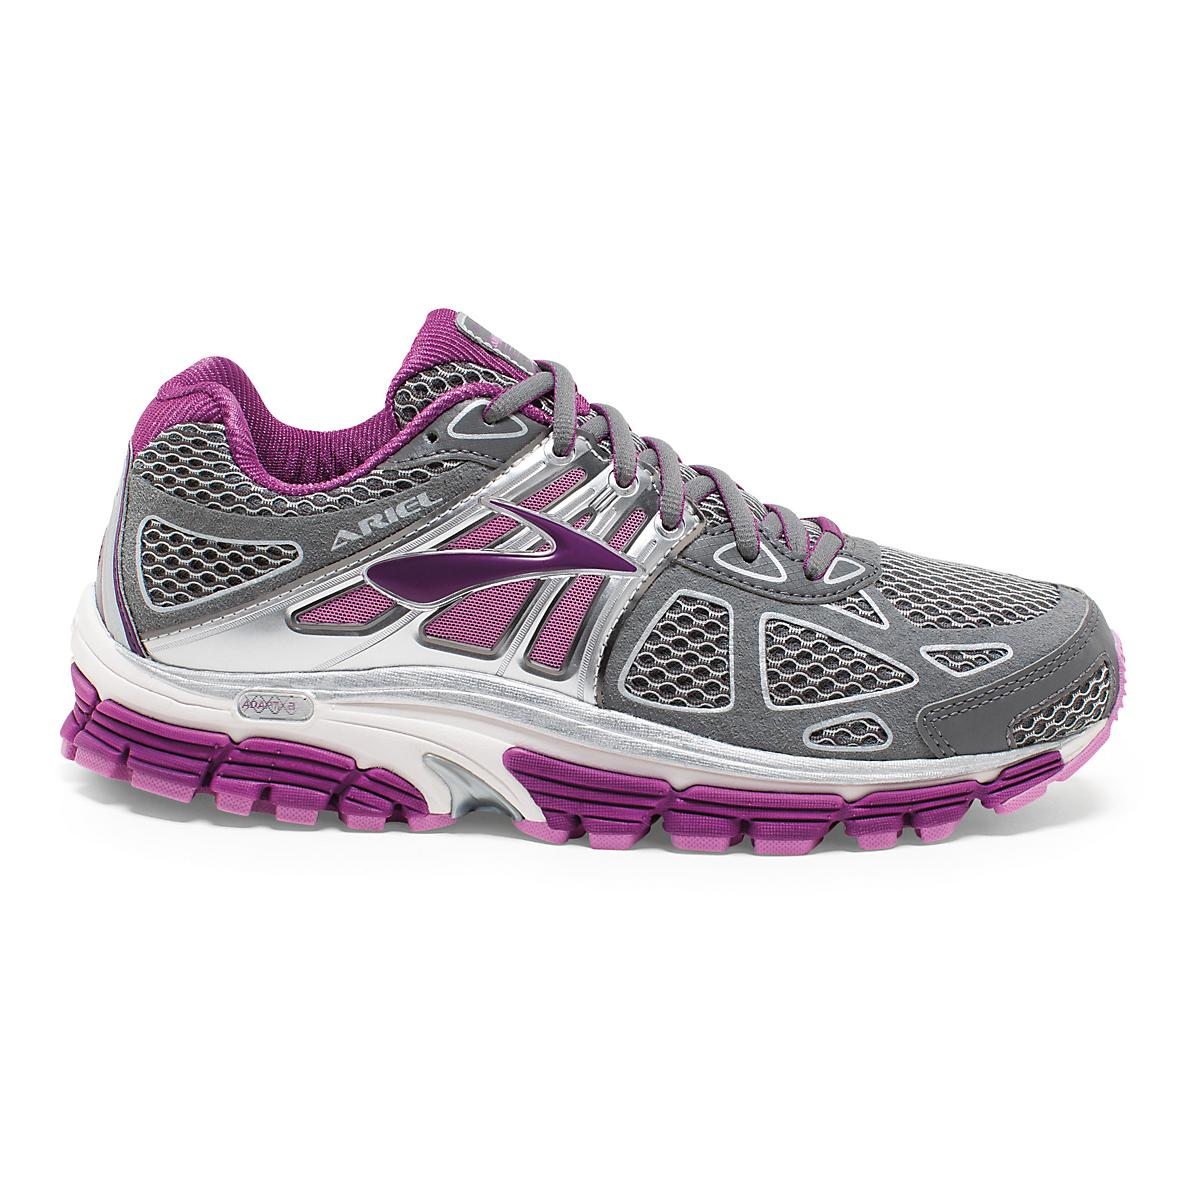 Brooks Ariel 14 Running Shoe - Wide Width Available pLjuO